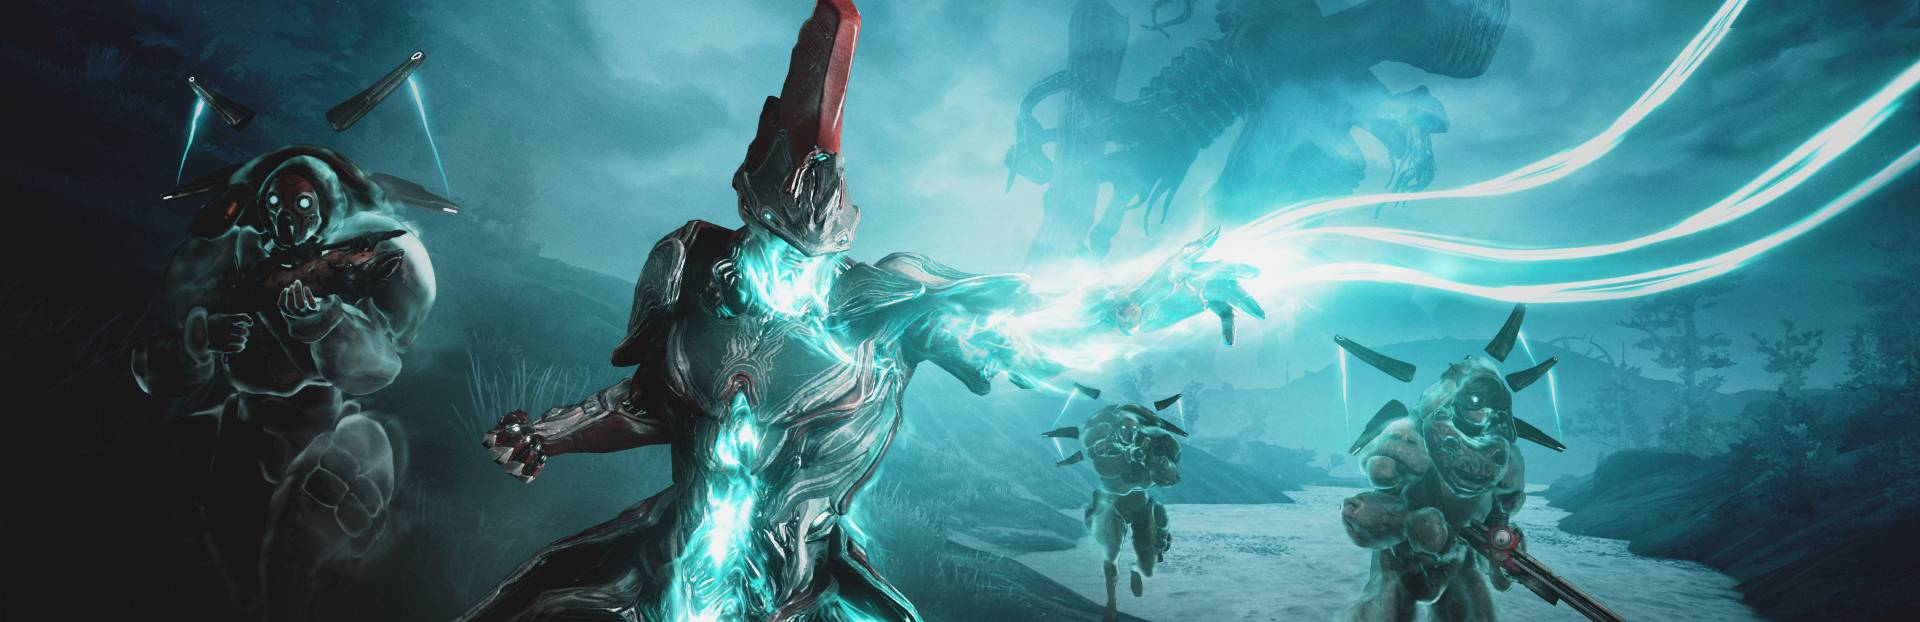 Mask Of The Revenant Update 23 5 0 Pc Update Notes Warframe Forums Revenant, the eidolon themed addition to the warframe lineup. mask of the revenant update 23 5 0